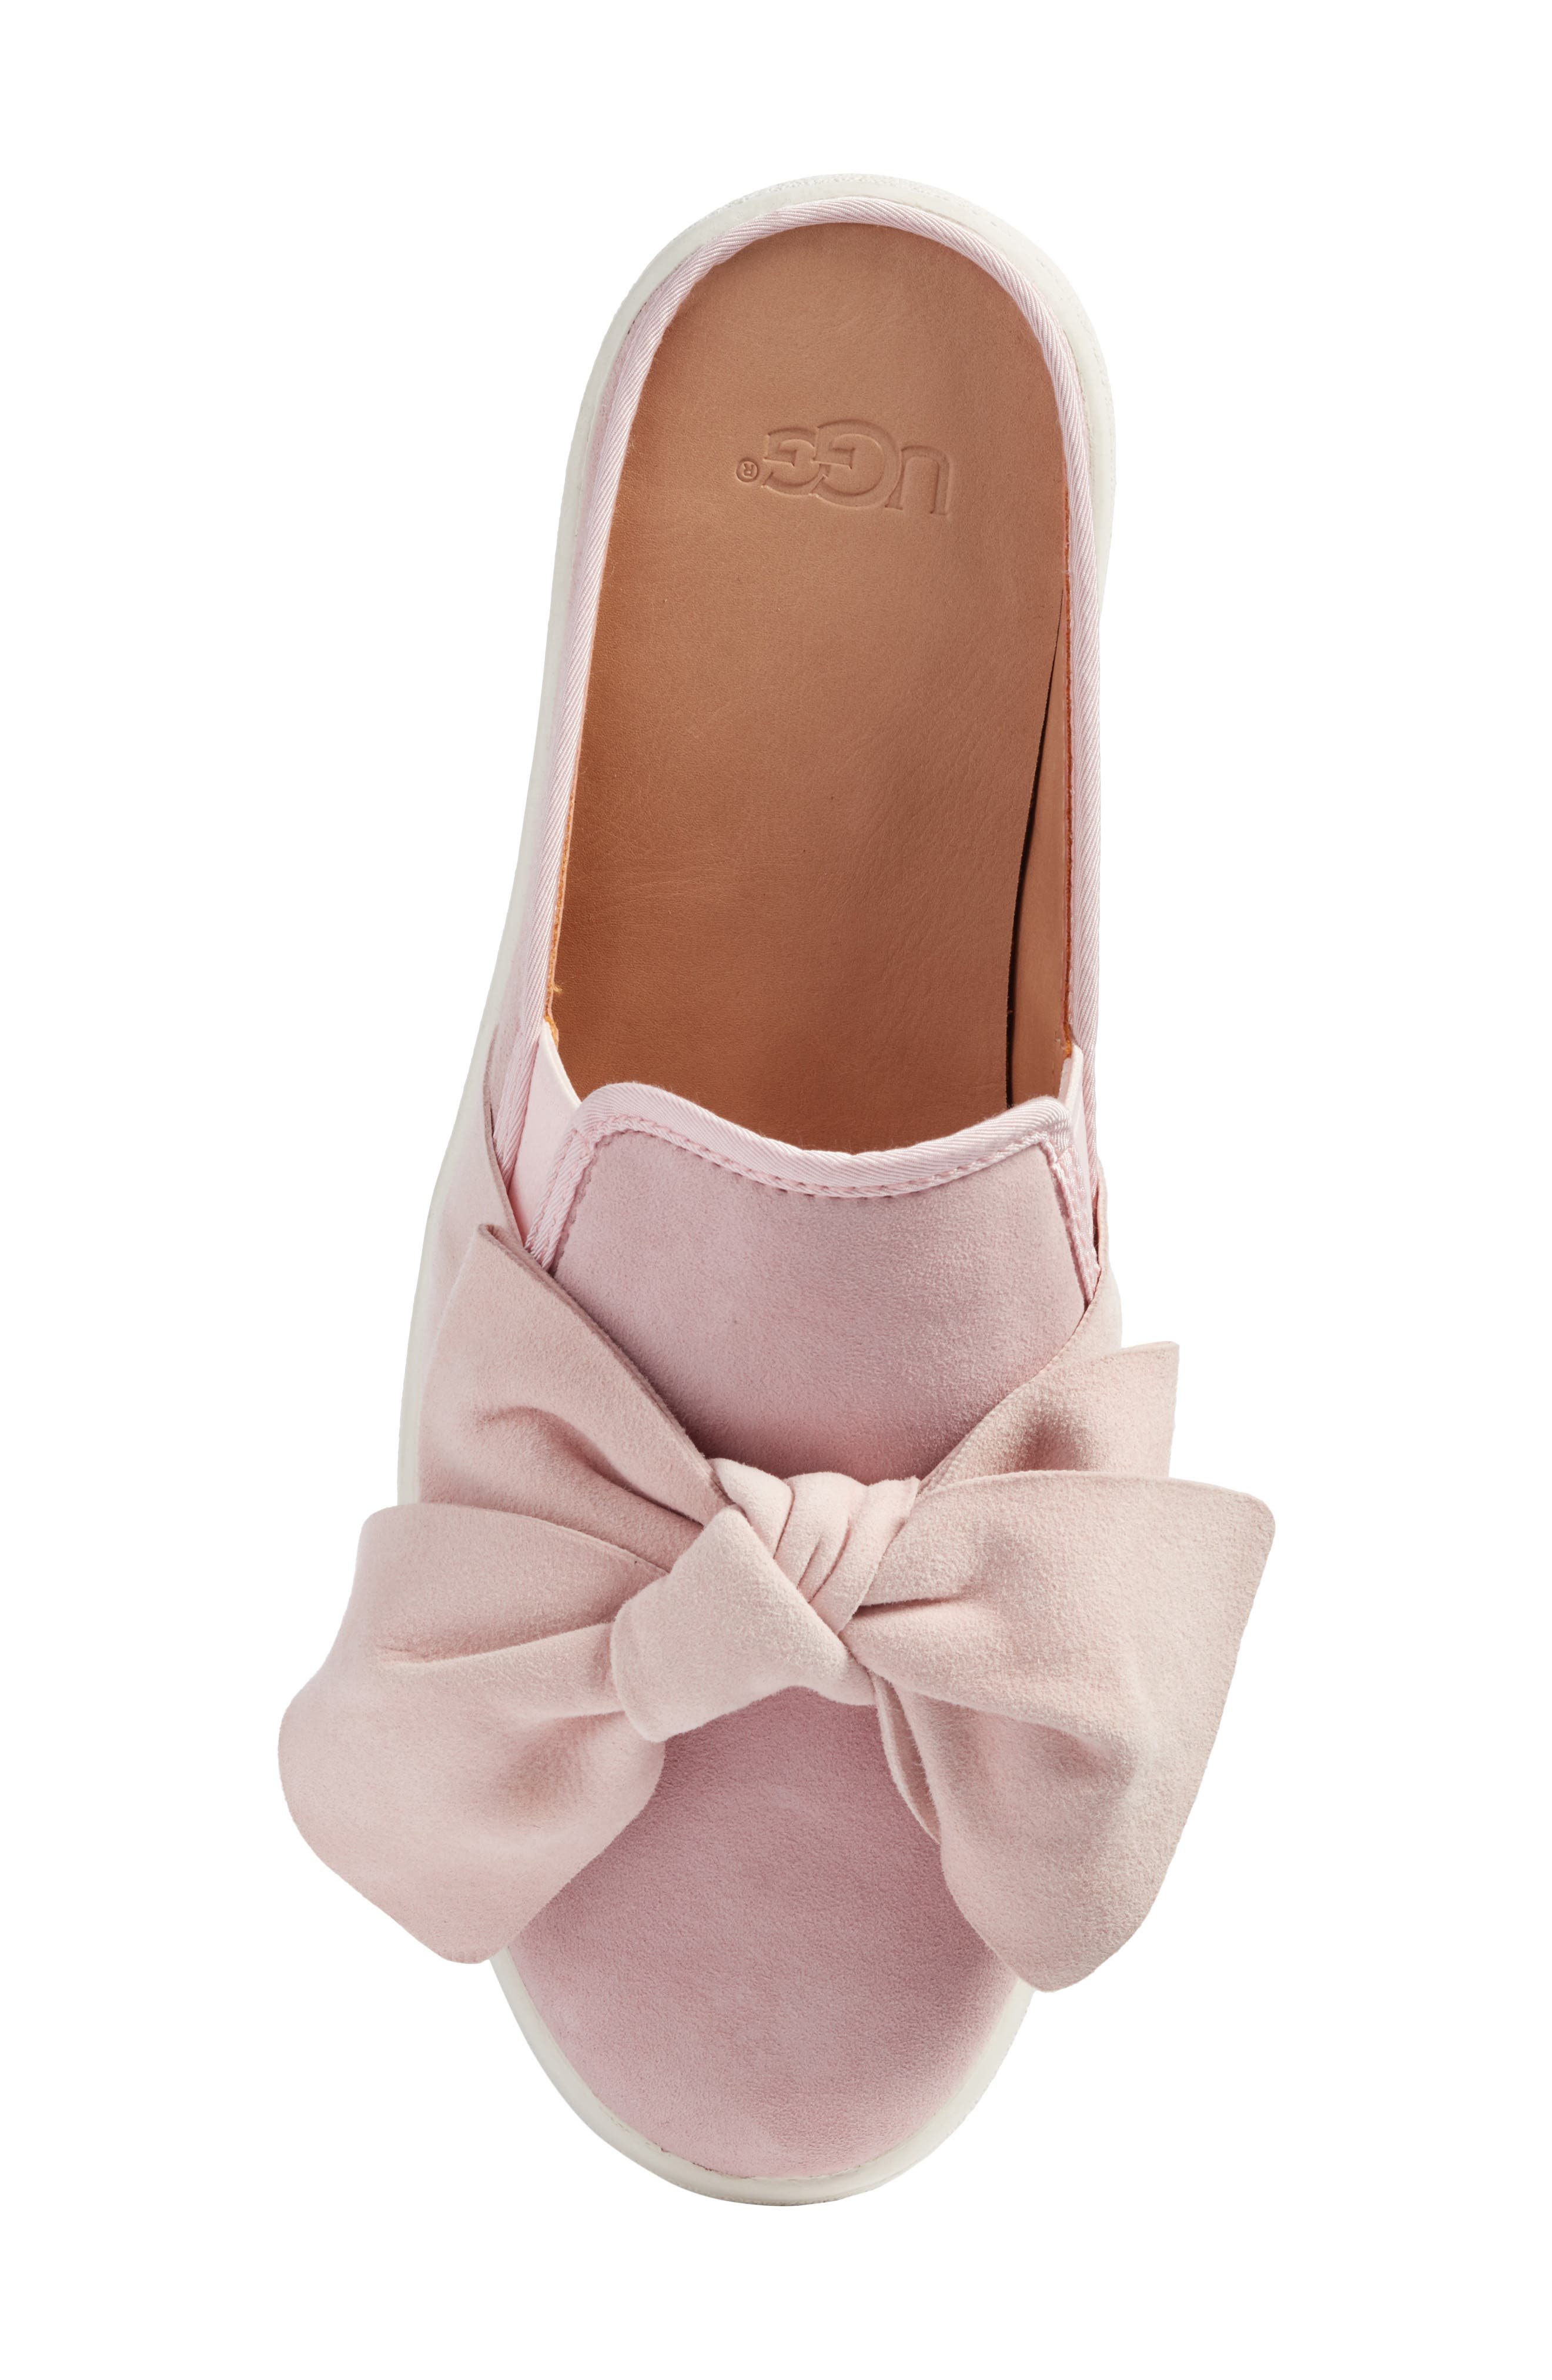 Luci Bow Sneaker Mule,                             Alternate thumbnail 5, color,                             Seashell Pink Suede